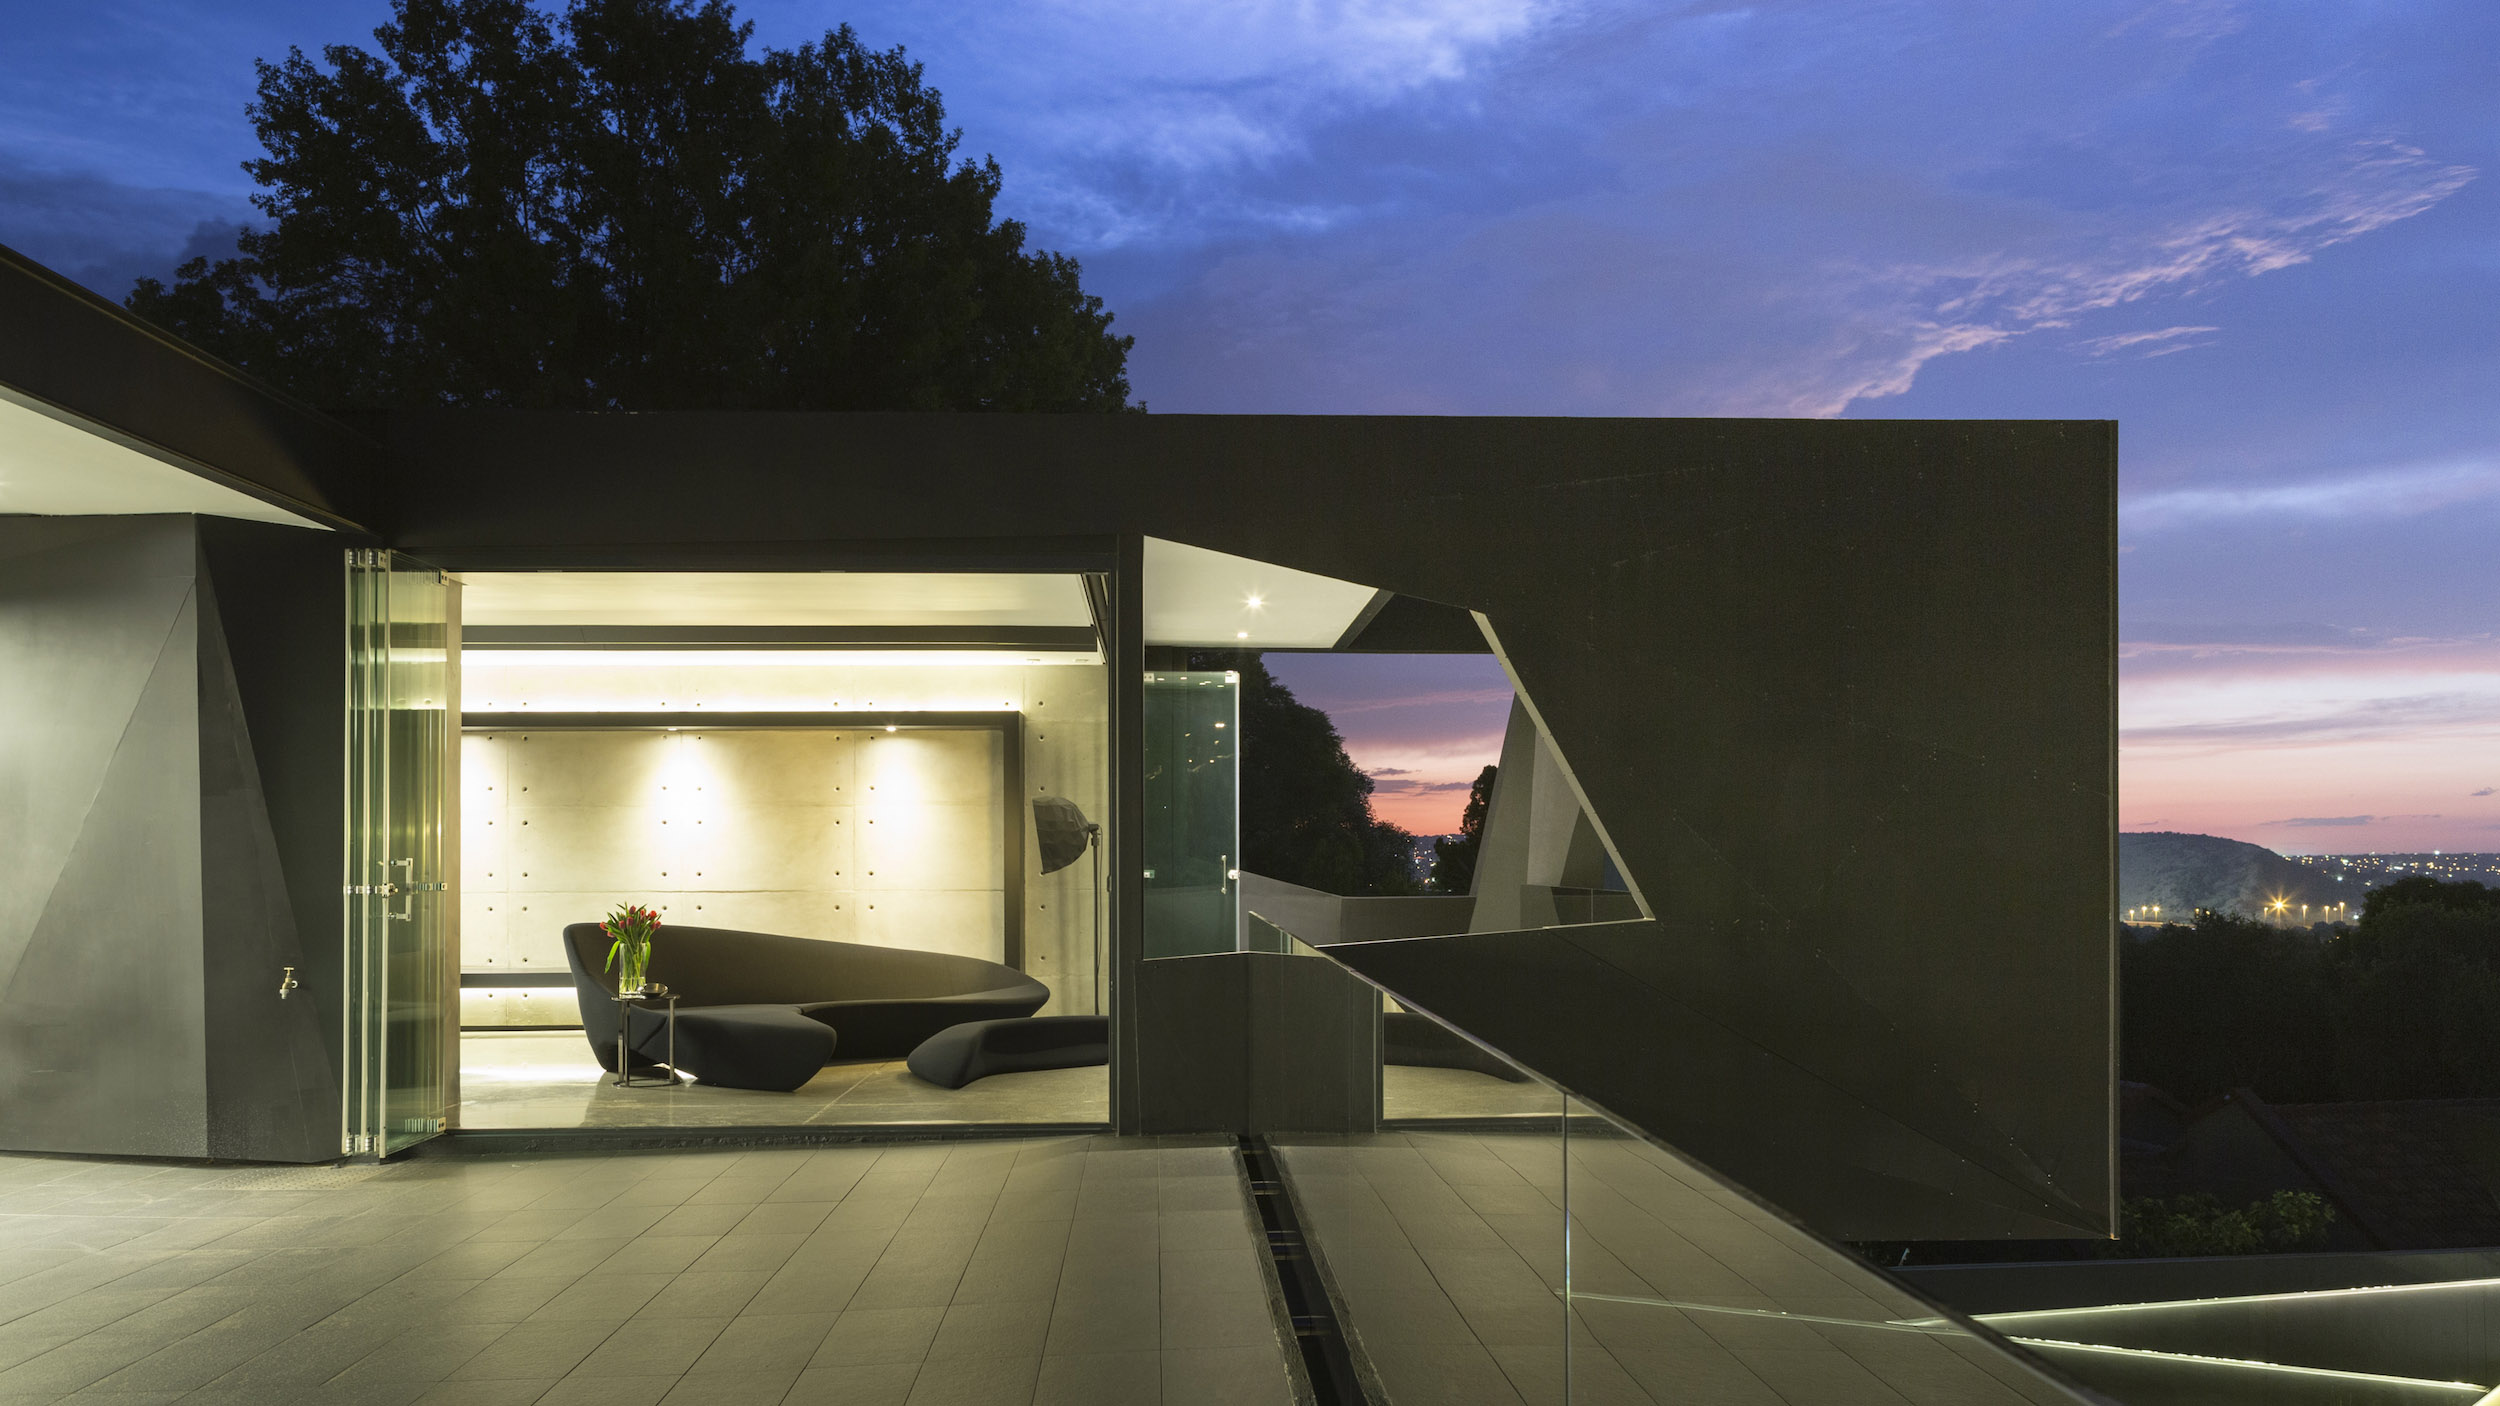 Kloof Road Masterpiece House in Johannesburg by Nico van der Meulen Architects-35